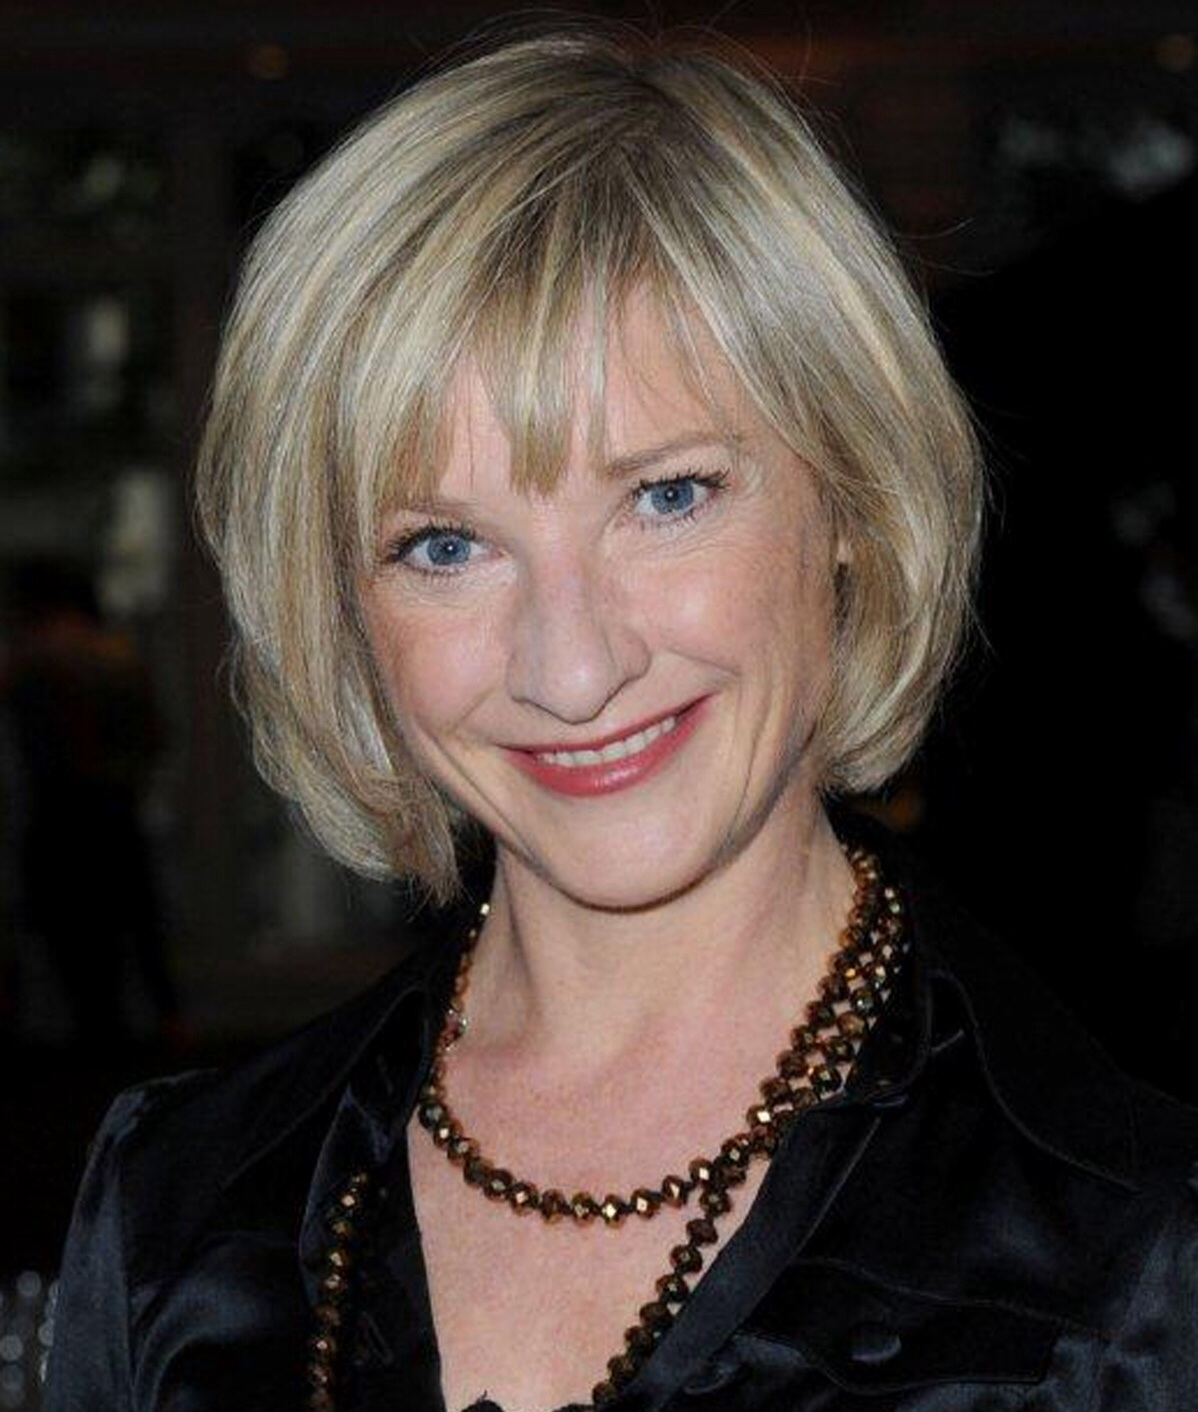 Discussion on this topic: Maureen Pryor, jane-horrocks/